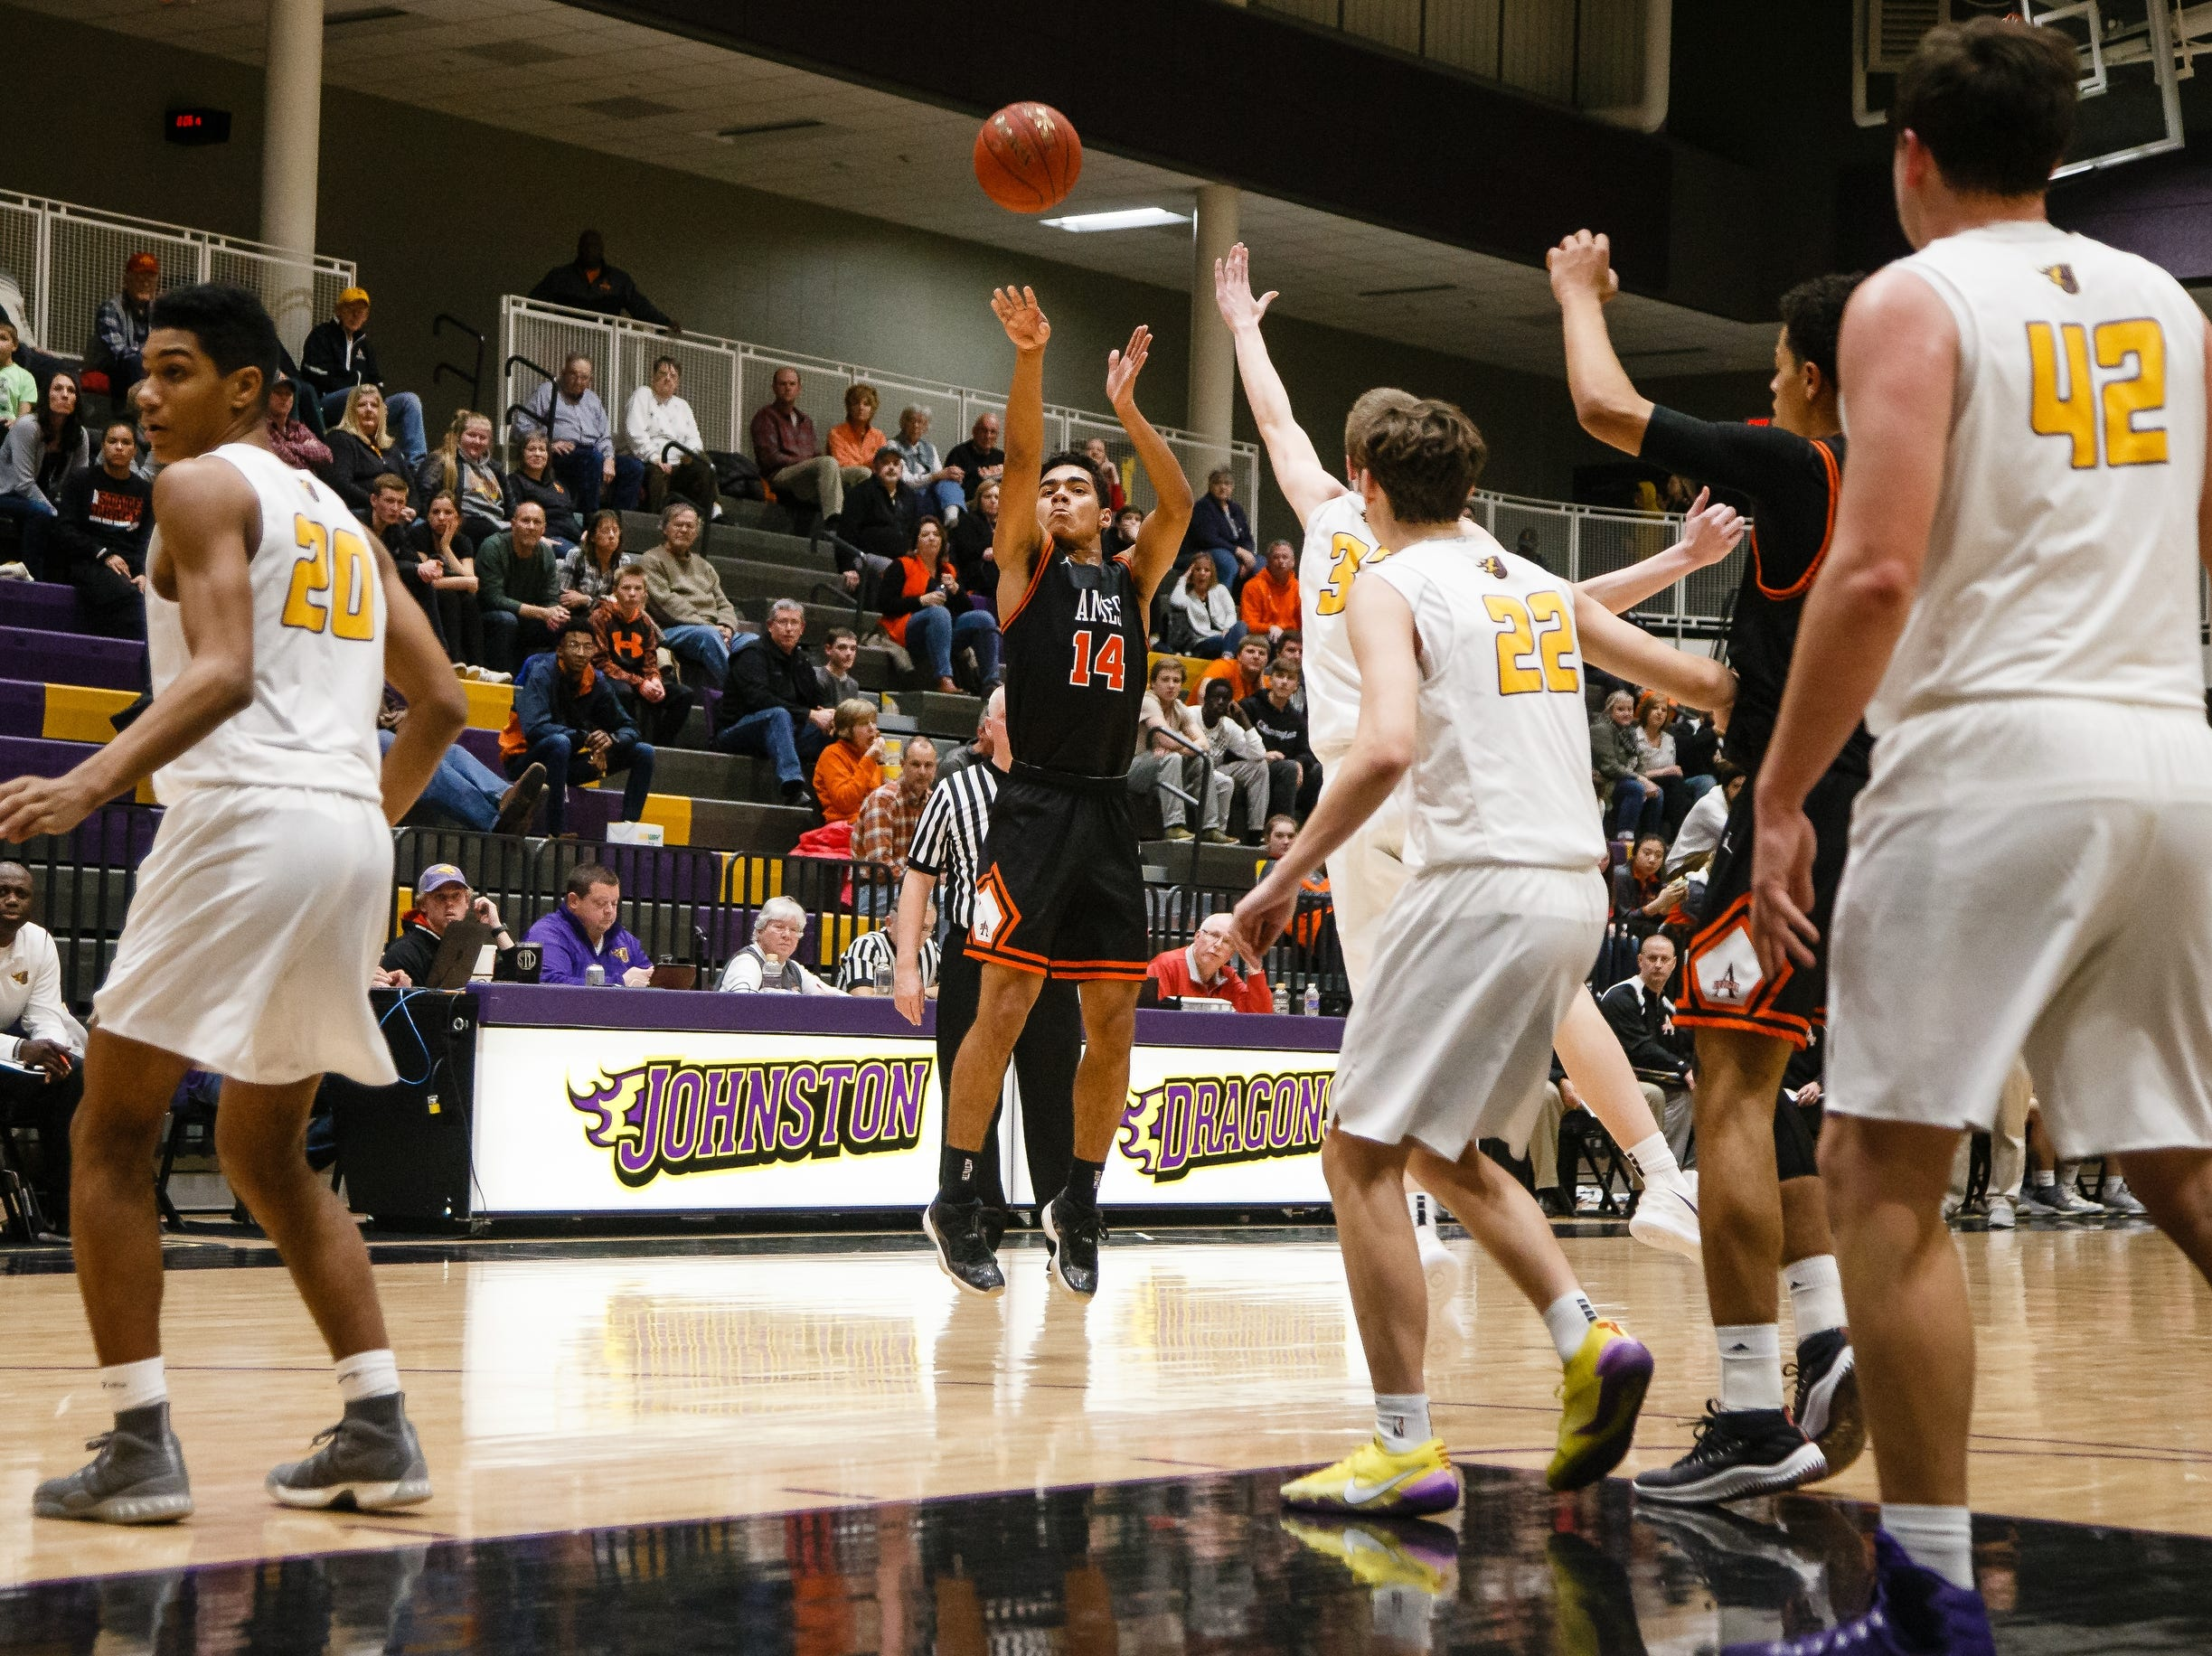 Ames freshman Tamin Lipsey hits a three point shot during Ames' basketball game against Johnston on Friday, Jan. 11, 2019, in Johnston.